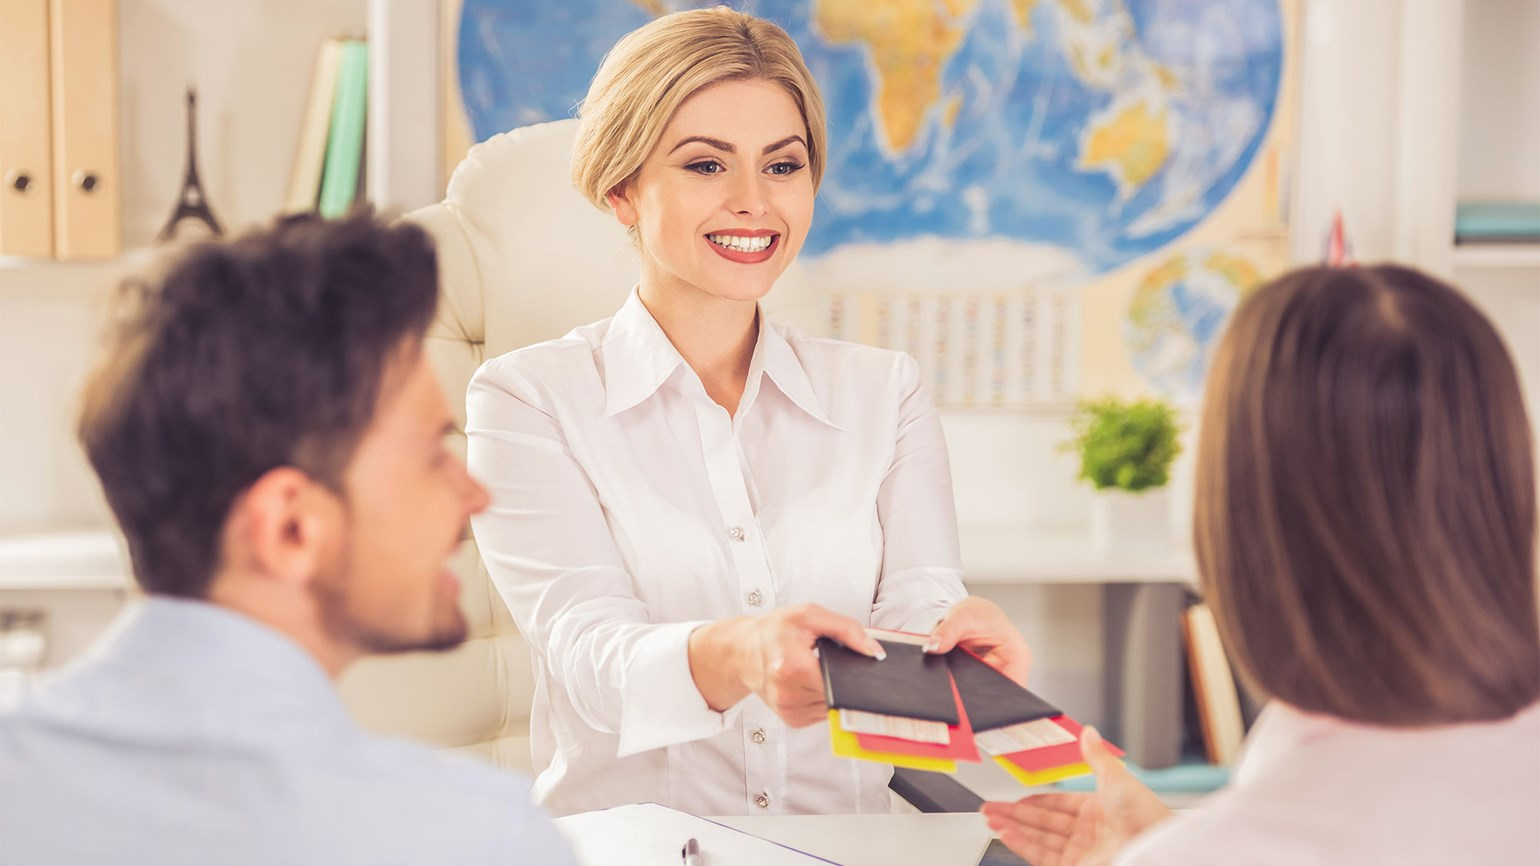 travel agencies Find the perfect agent for your travel needs whether you want a destination expert or an interest specialist, we have multiple ways to find that perfect travelagent.